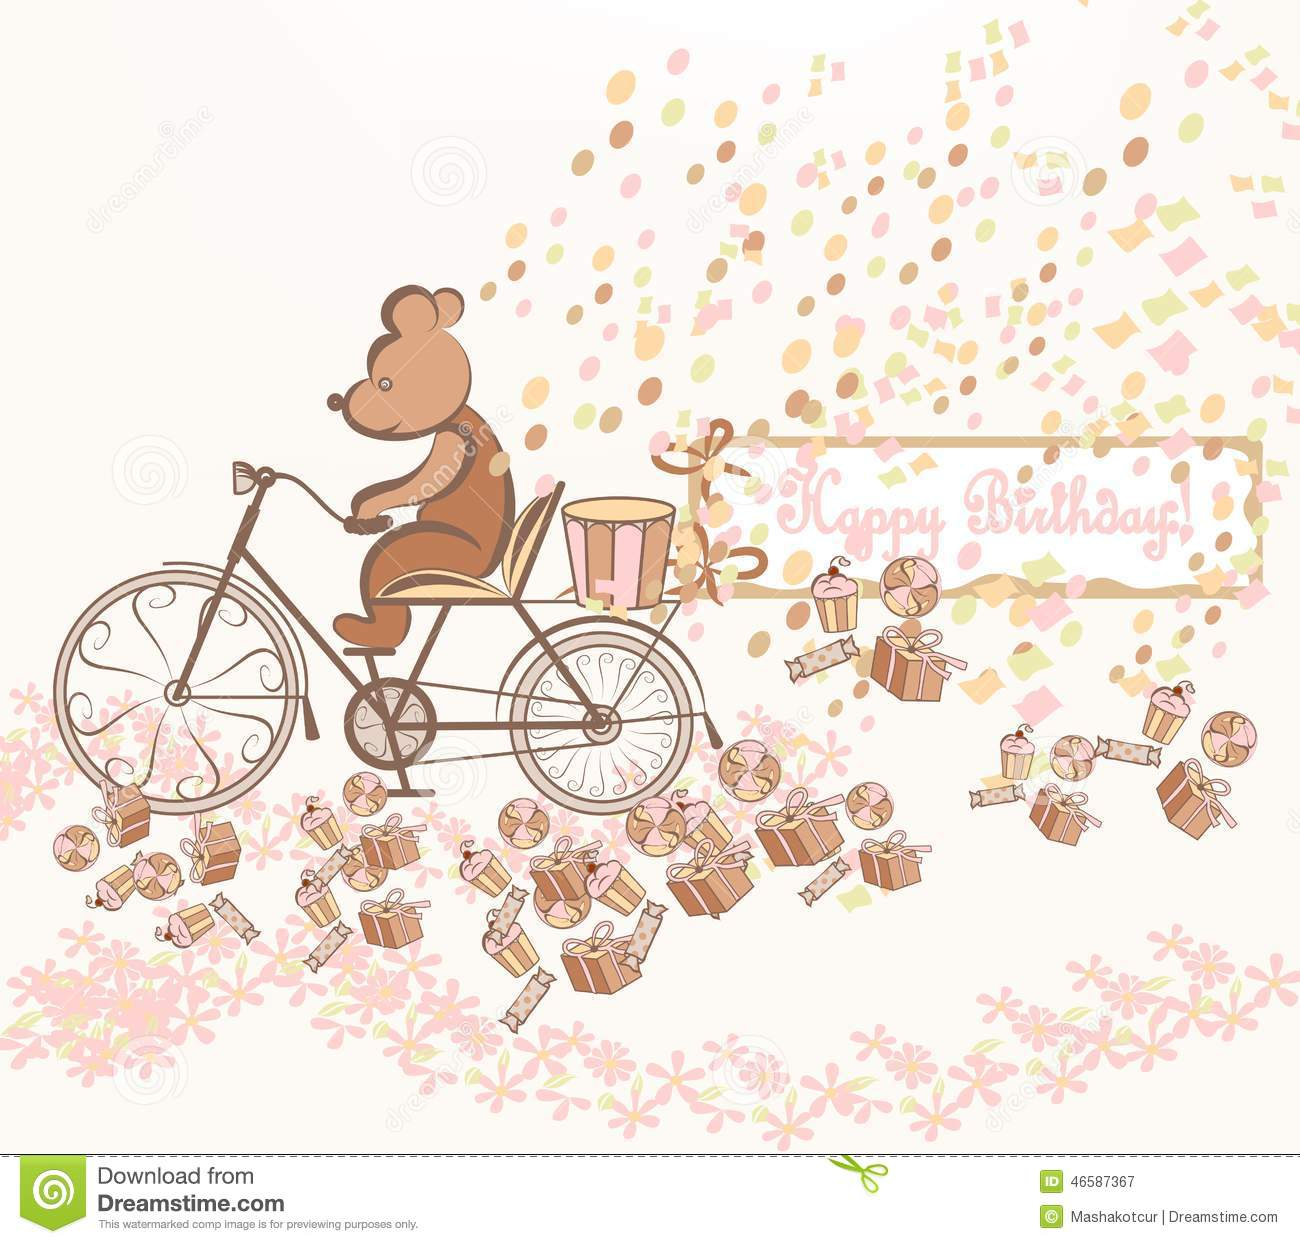 Happy Birthday Vector Card With A Bicycle Vector Image – Birthday Card Art